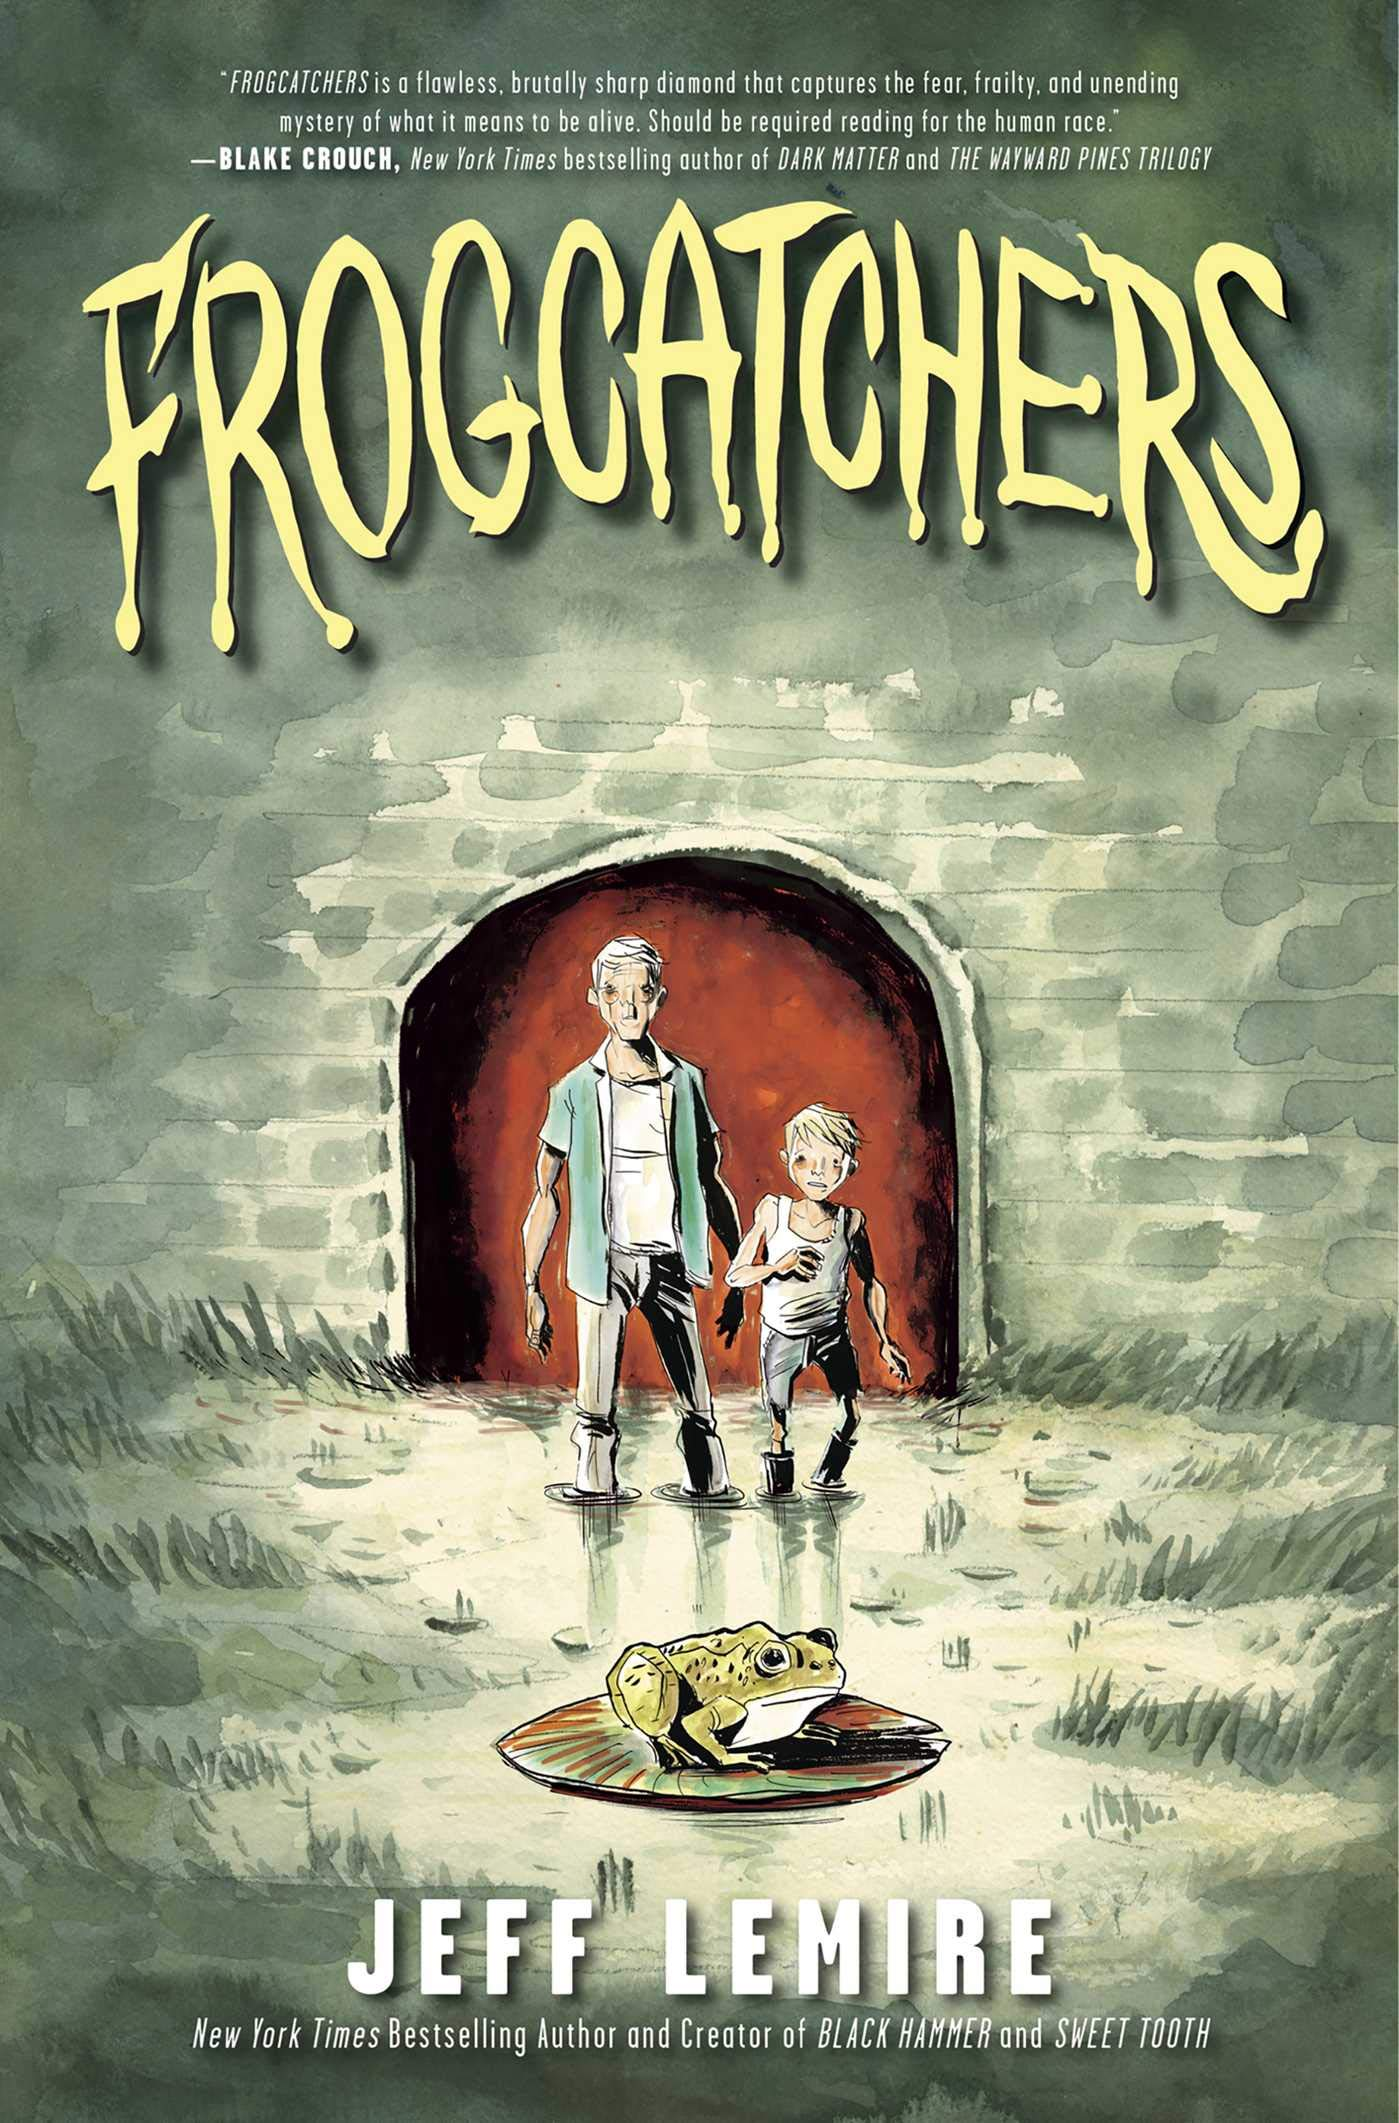 Graphic Novels for Fall 2019: Frogcatchers